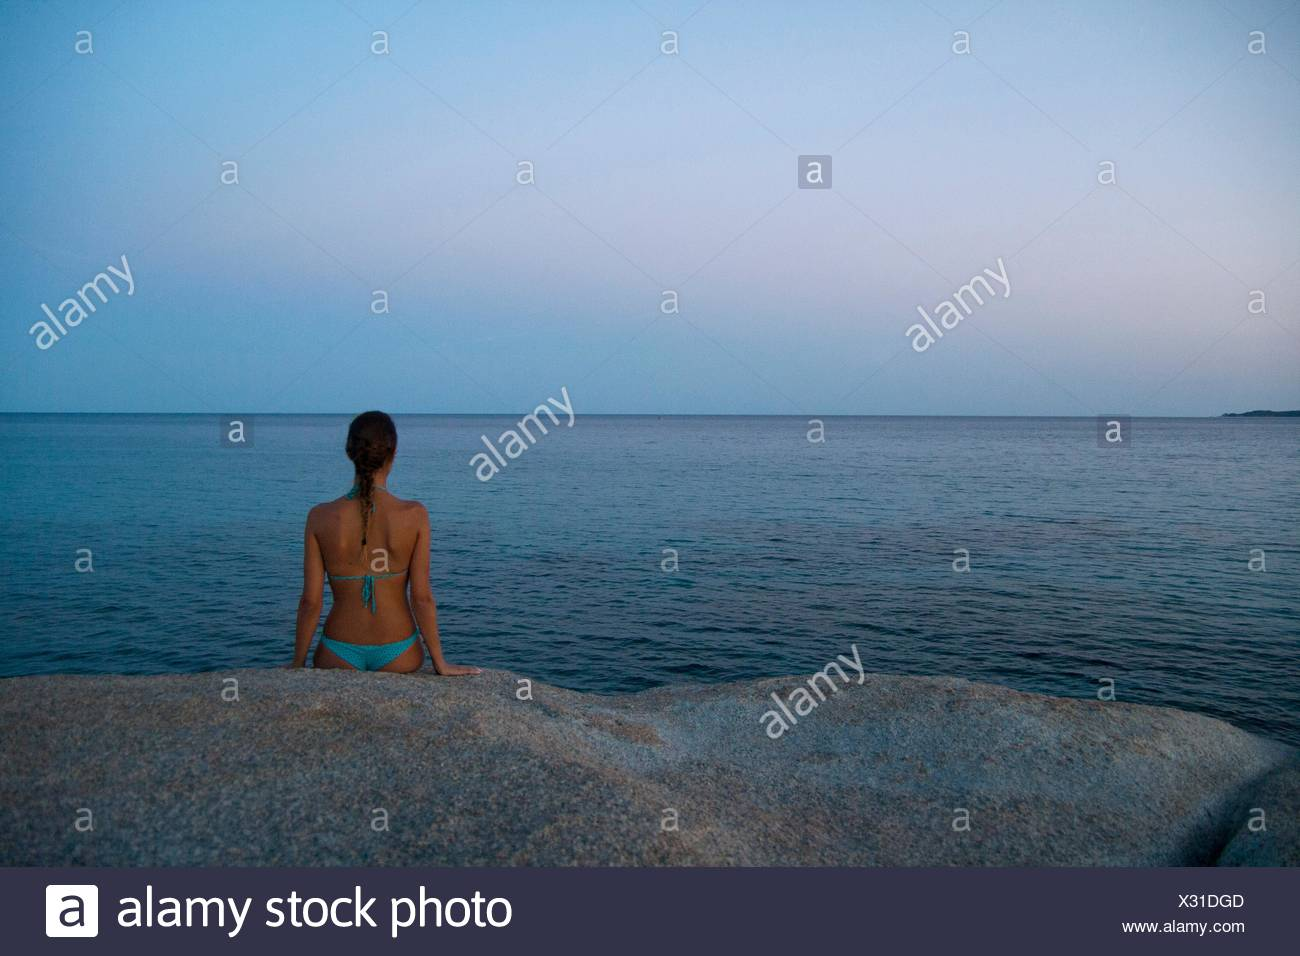 Young woman sitting on rock, looking out to sea, Costa rei, Sardinia, Italy - Stock Image